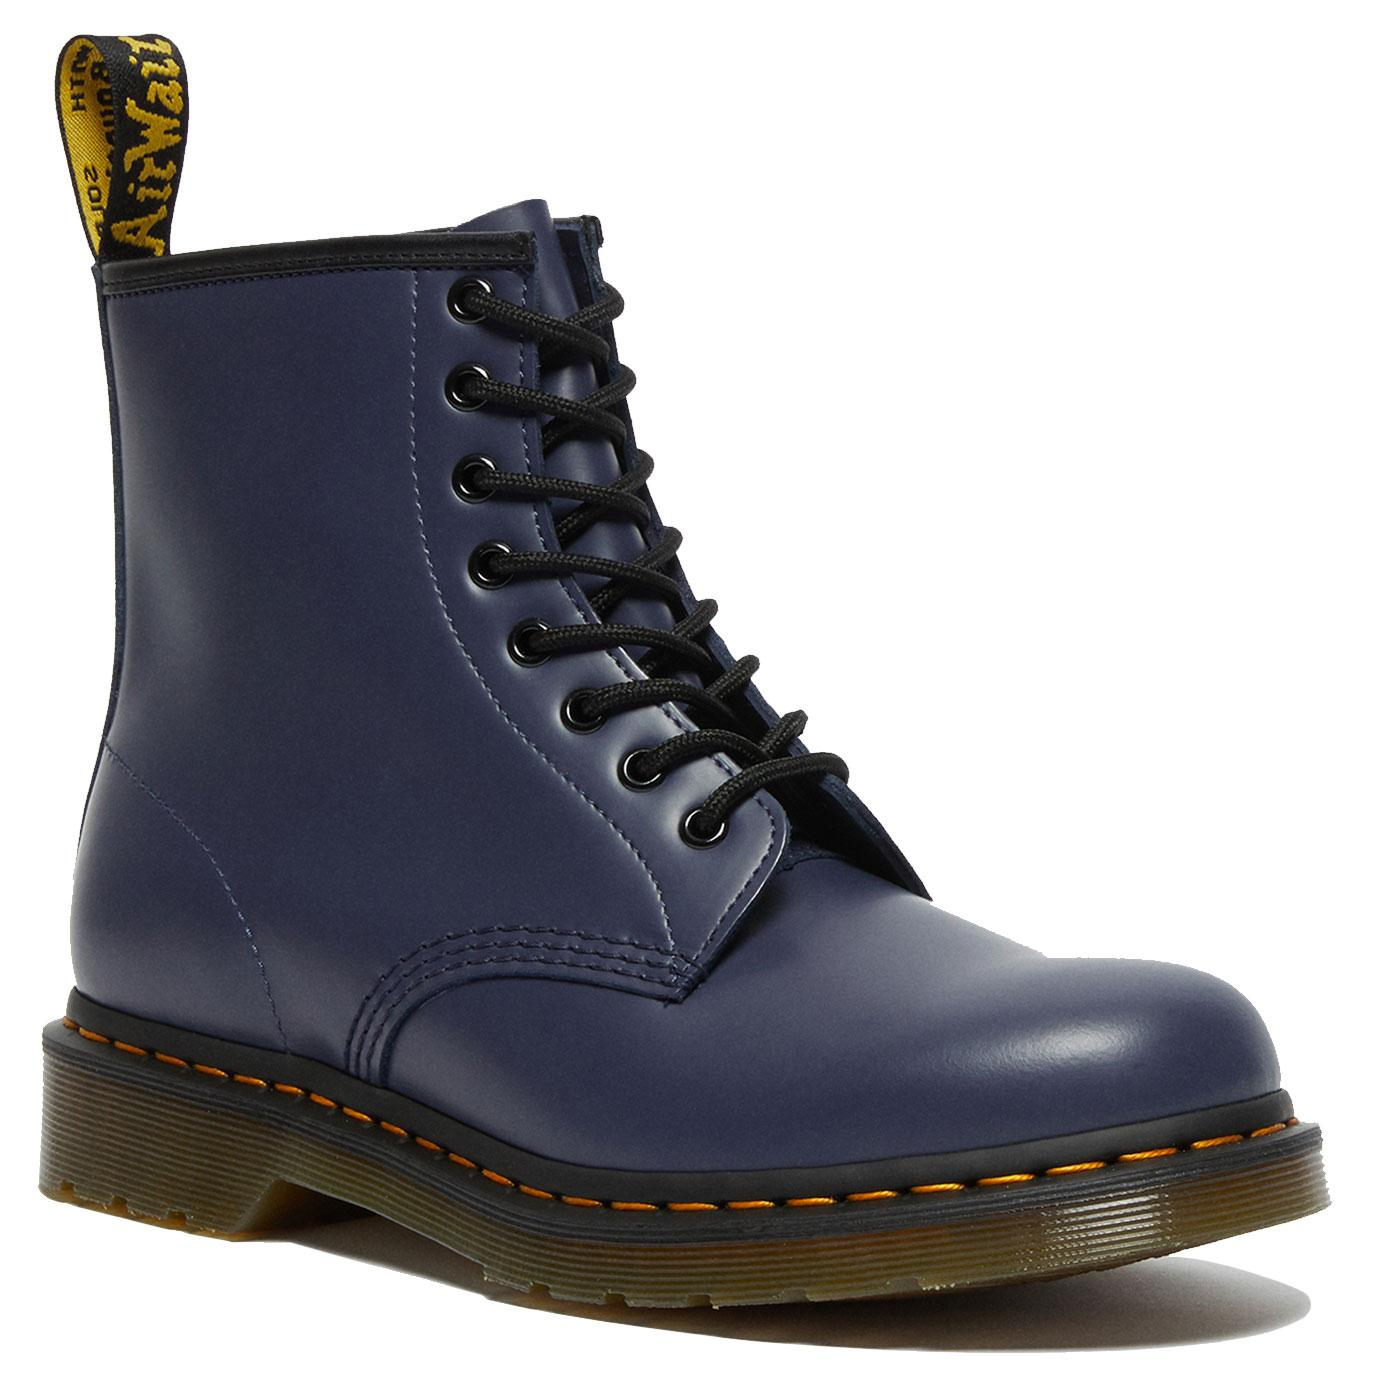 1460 Smooth DR MARTENS Womens Leather Boots INDIGO